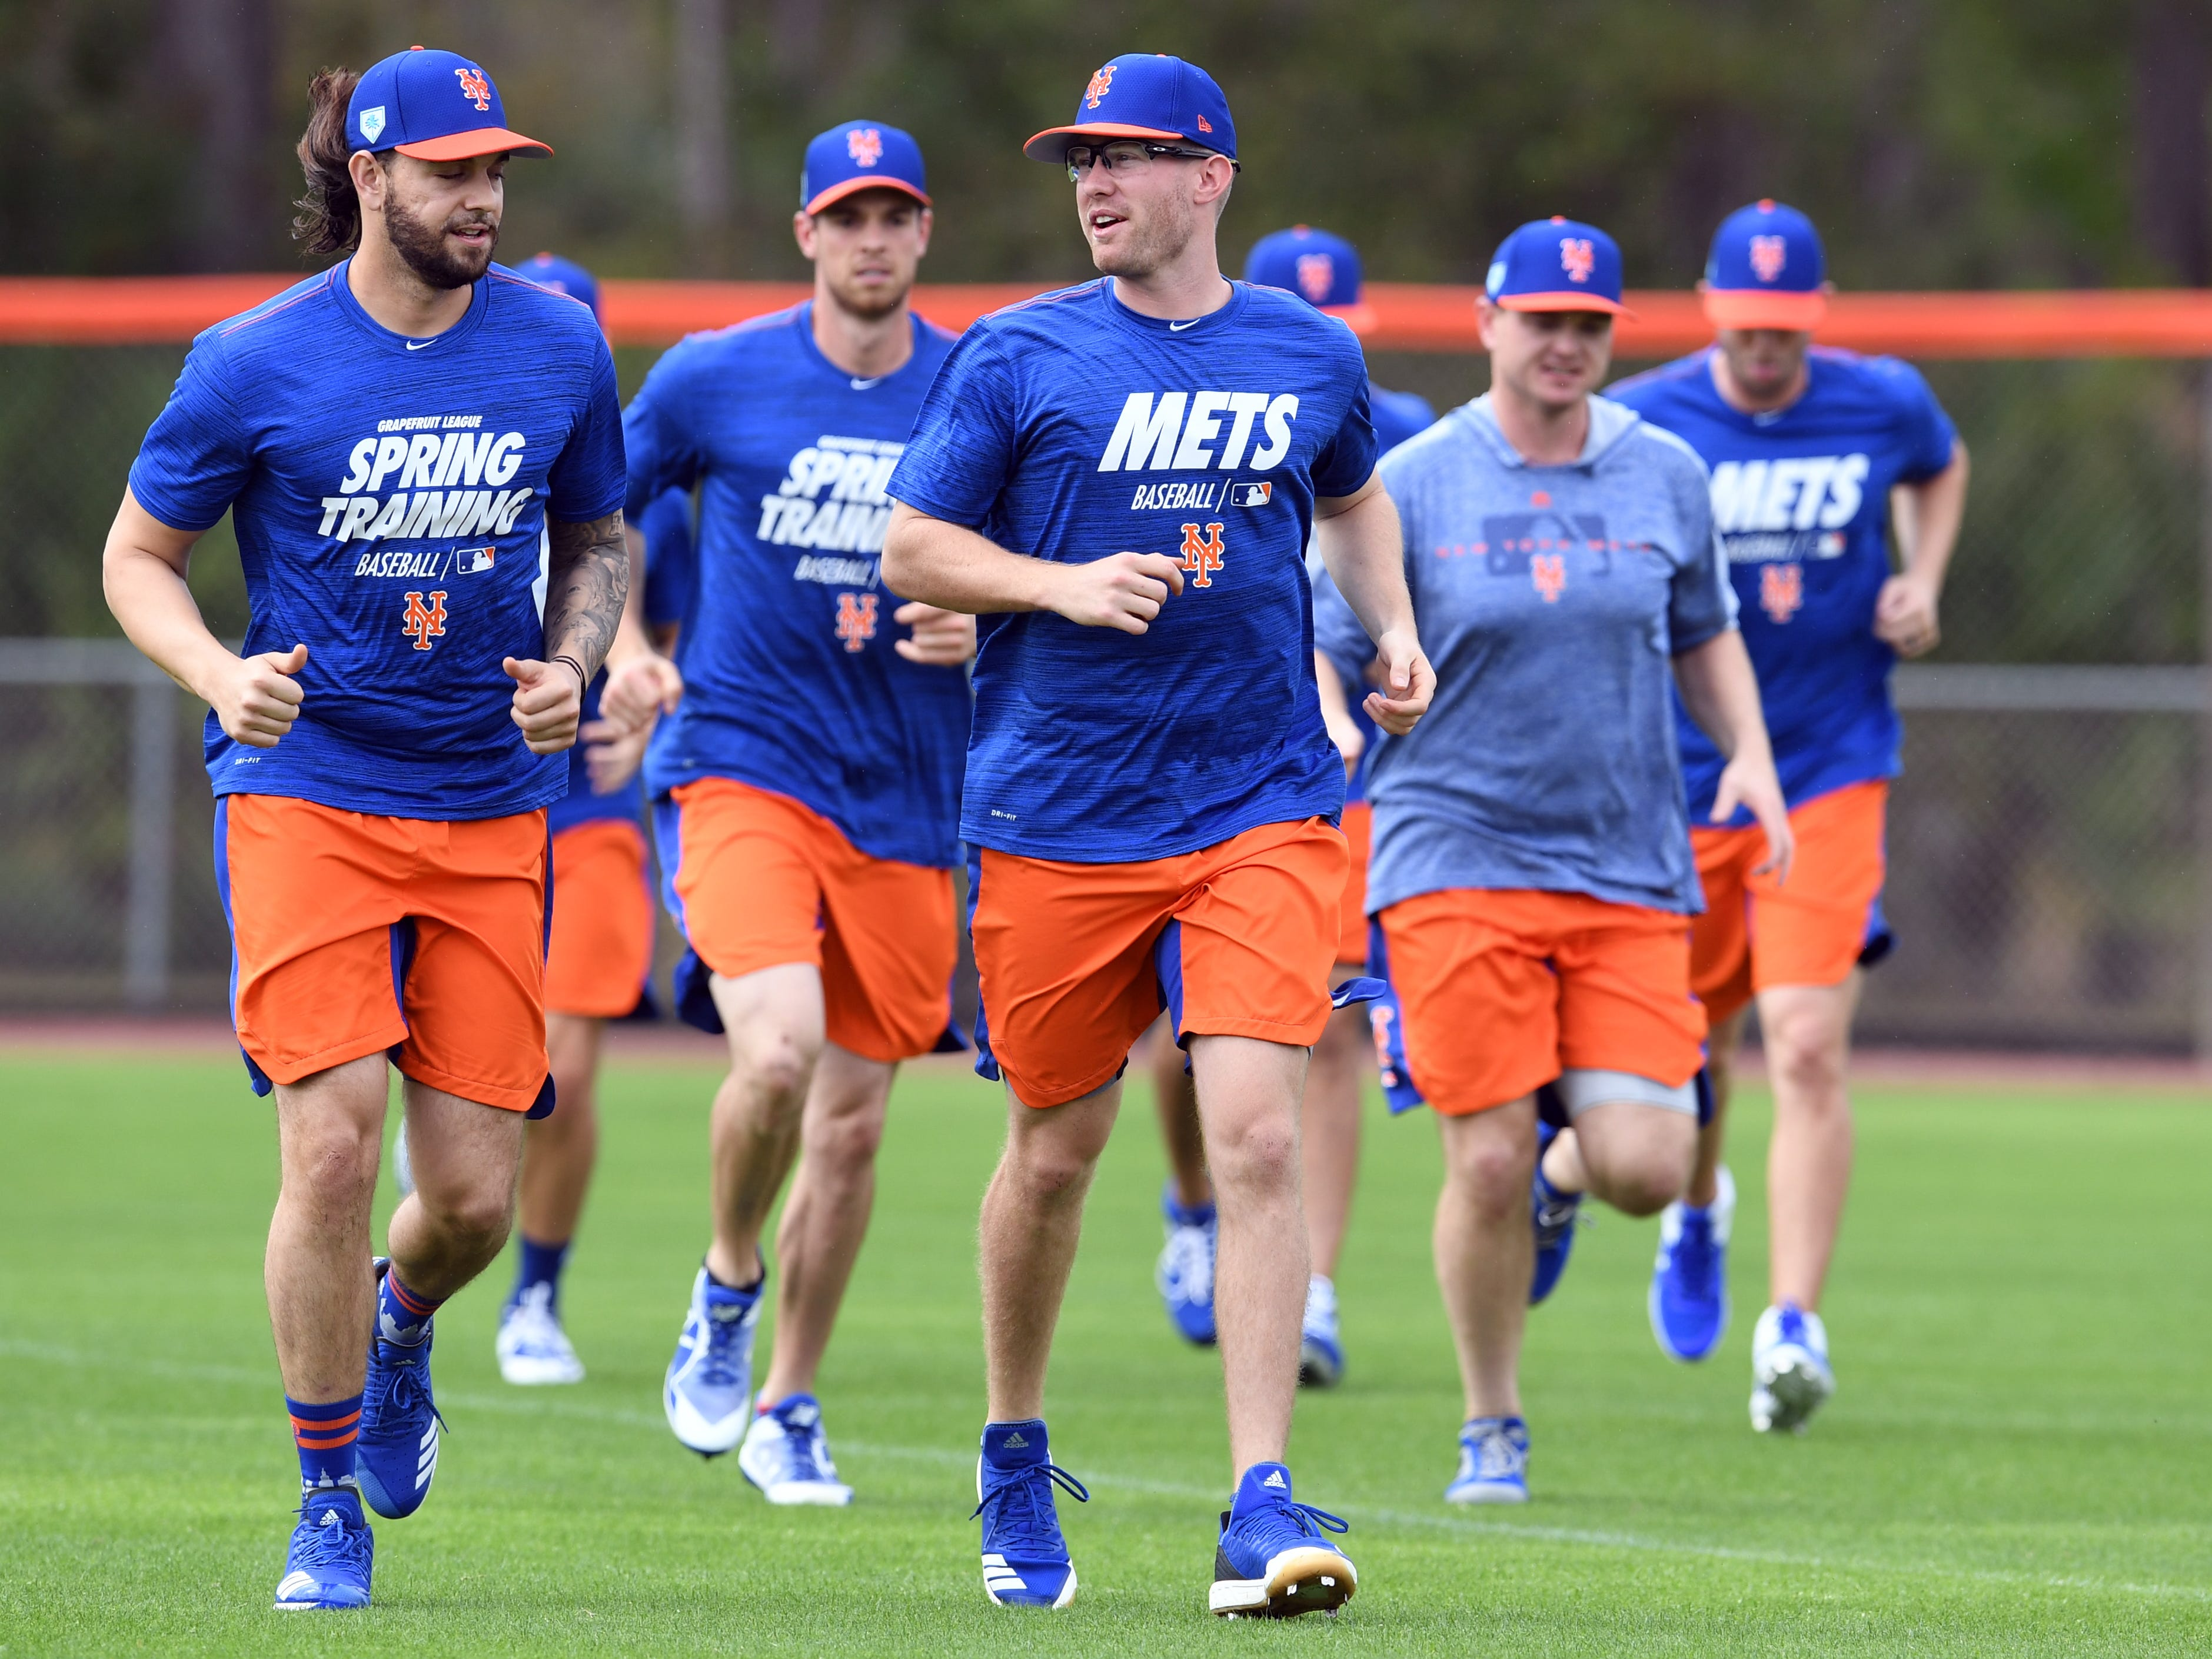 Members of the New York Mets gathered on Monday, Feb. 11, 2019 for a spring training practice session at First Data Field in Port St. Lucie. The Mets' first full squad practice will be Feb. 18 followed by the first game of spring training against the Atlanta Braves on Feb. 23.